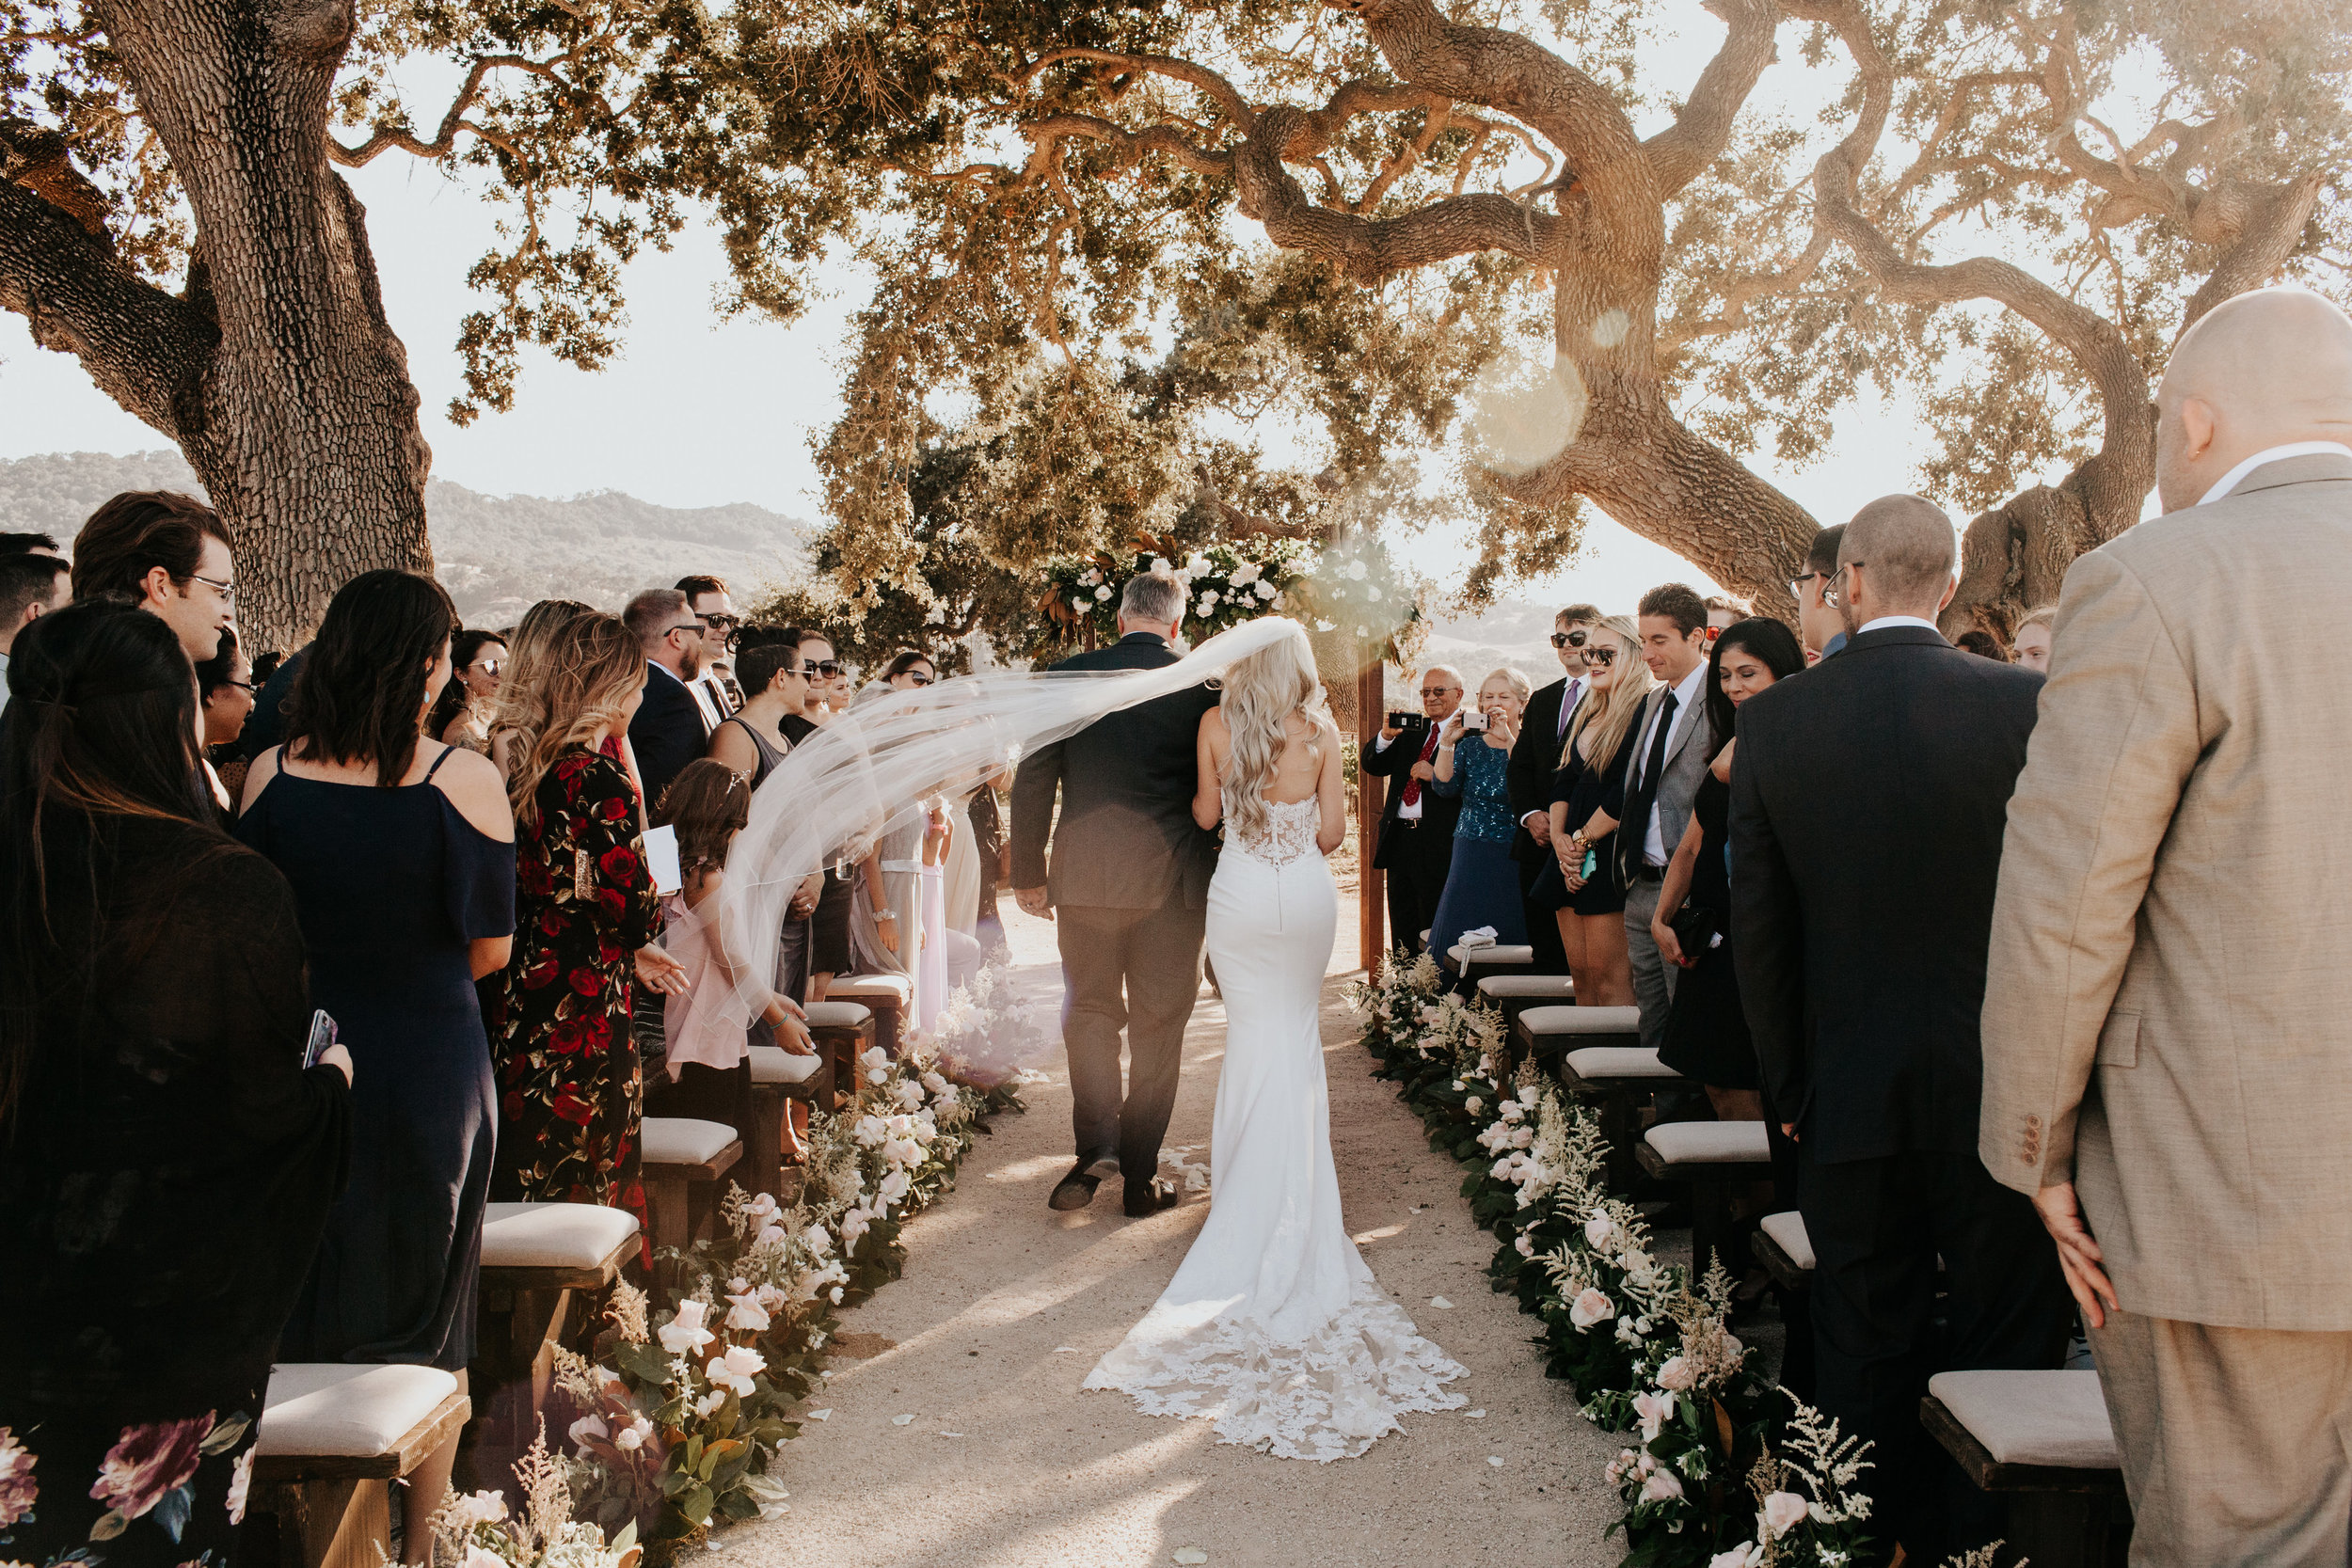 www.santabarbarawedding.com | Alexandria Monette Photography | Sunstone Villa | Soleil Events | Anna le Pley Taylor Flowers | Town and Country Event Rentals | Bride Walks into Ceremony